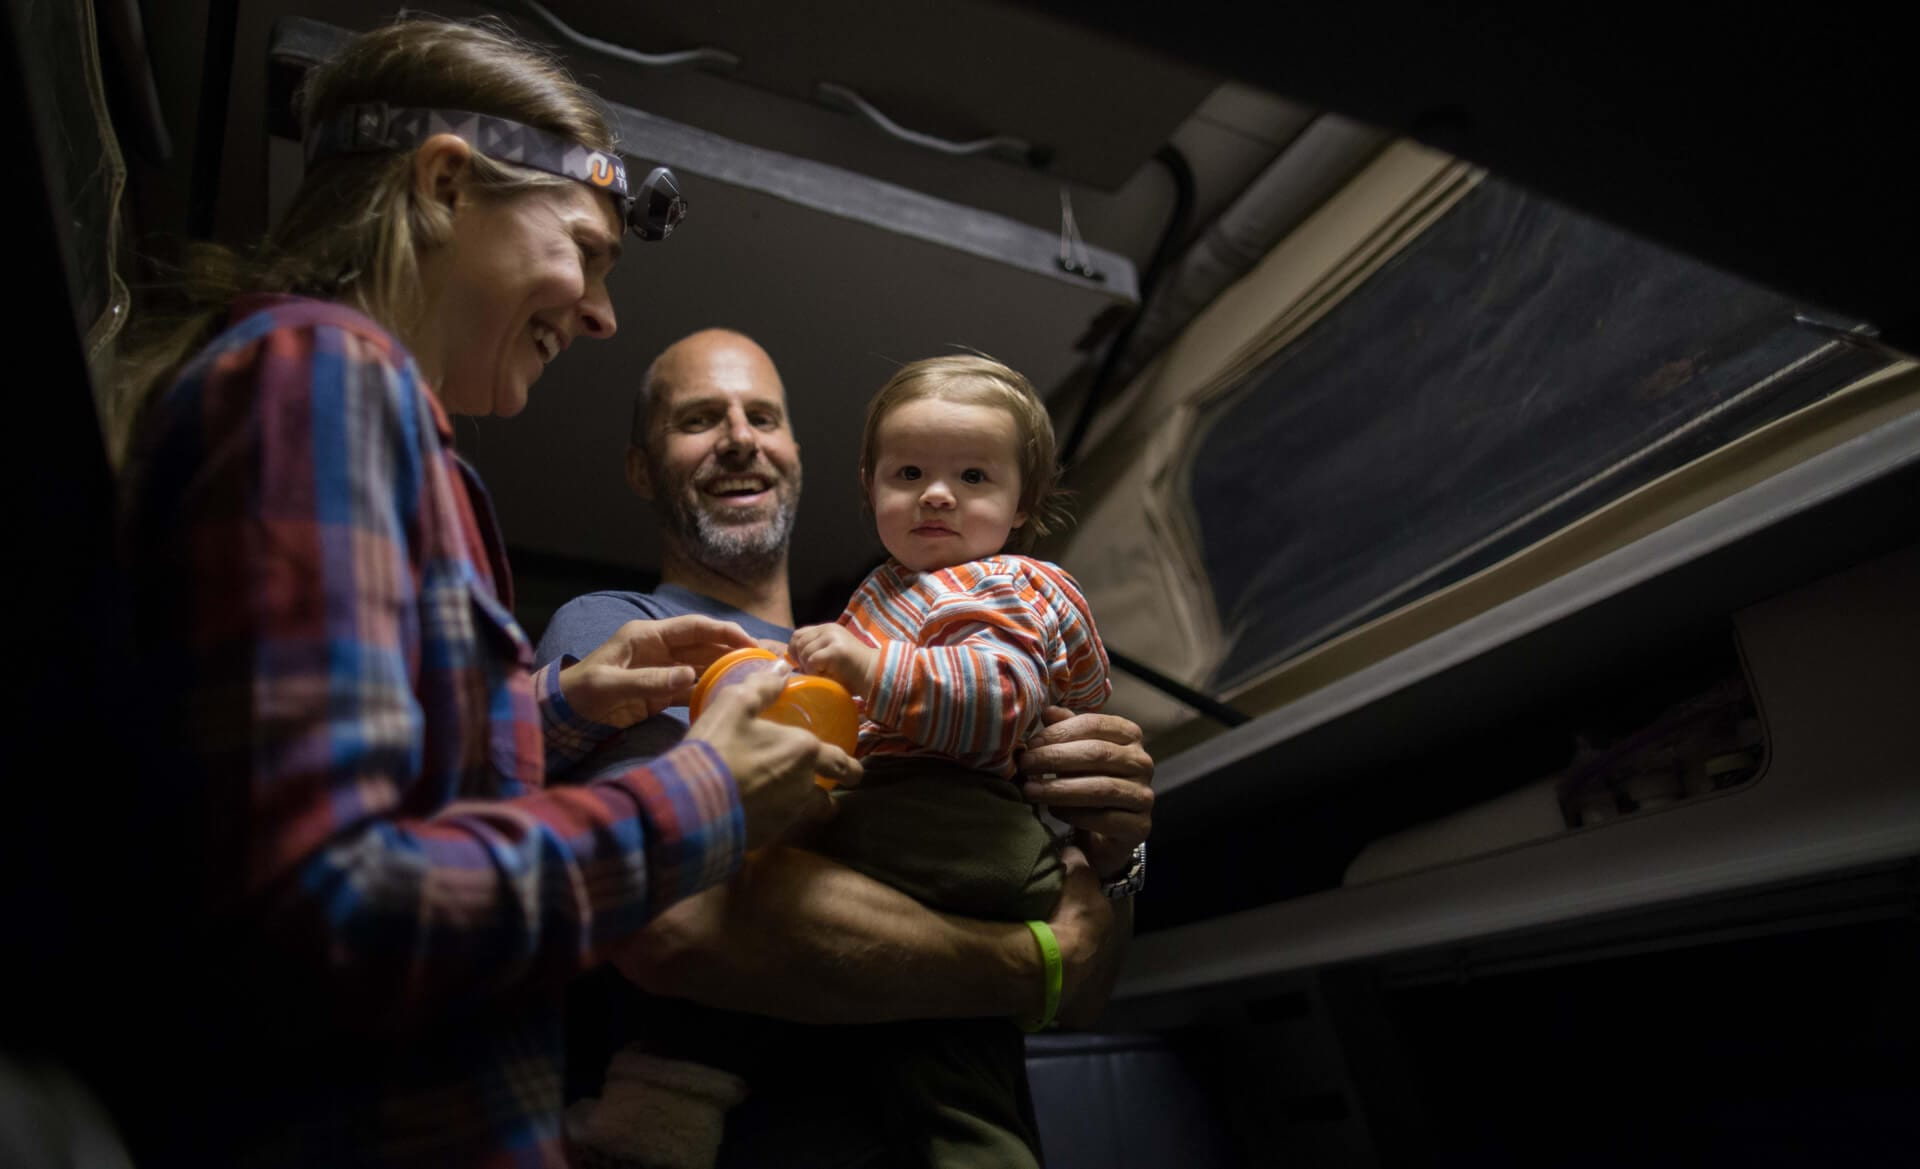 How to Van Life with Your Family (and have the time of your lives!)